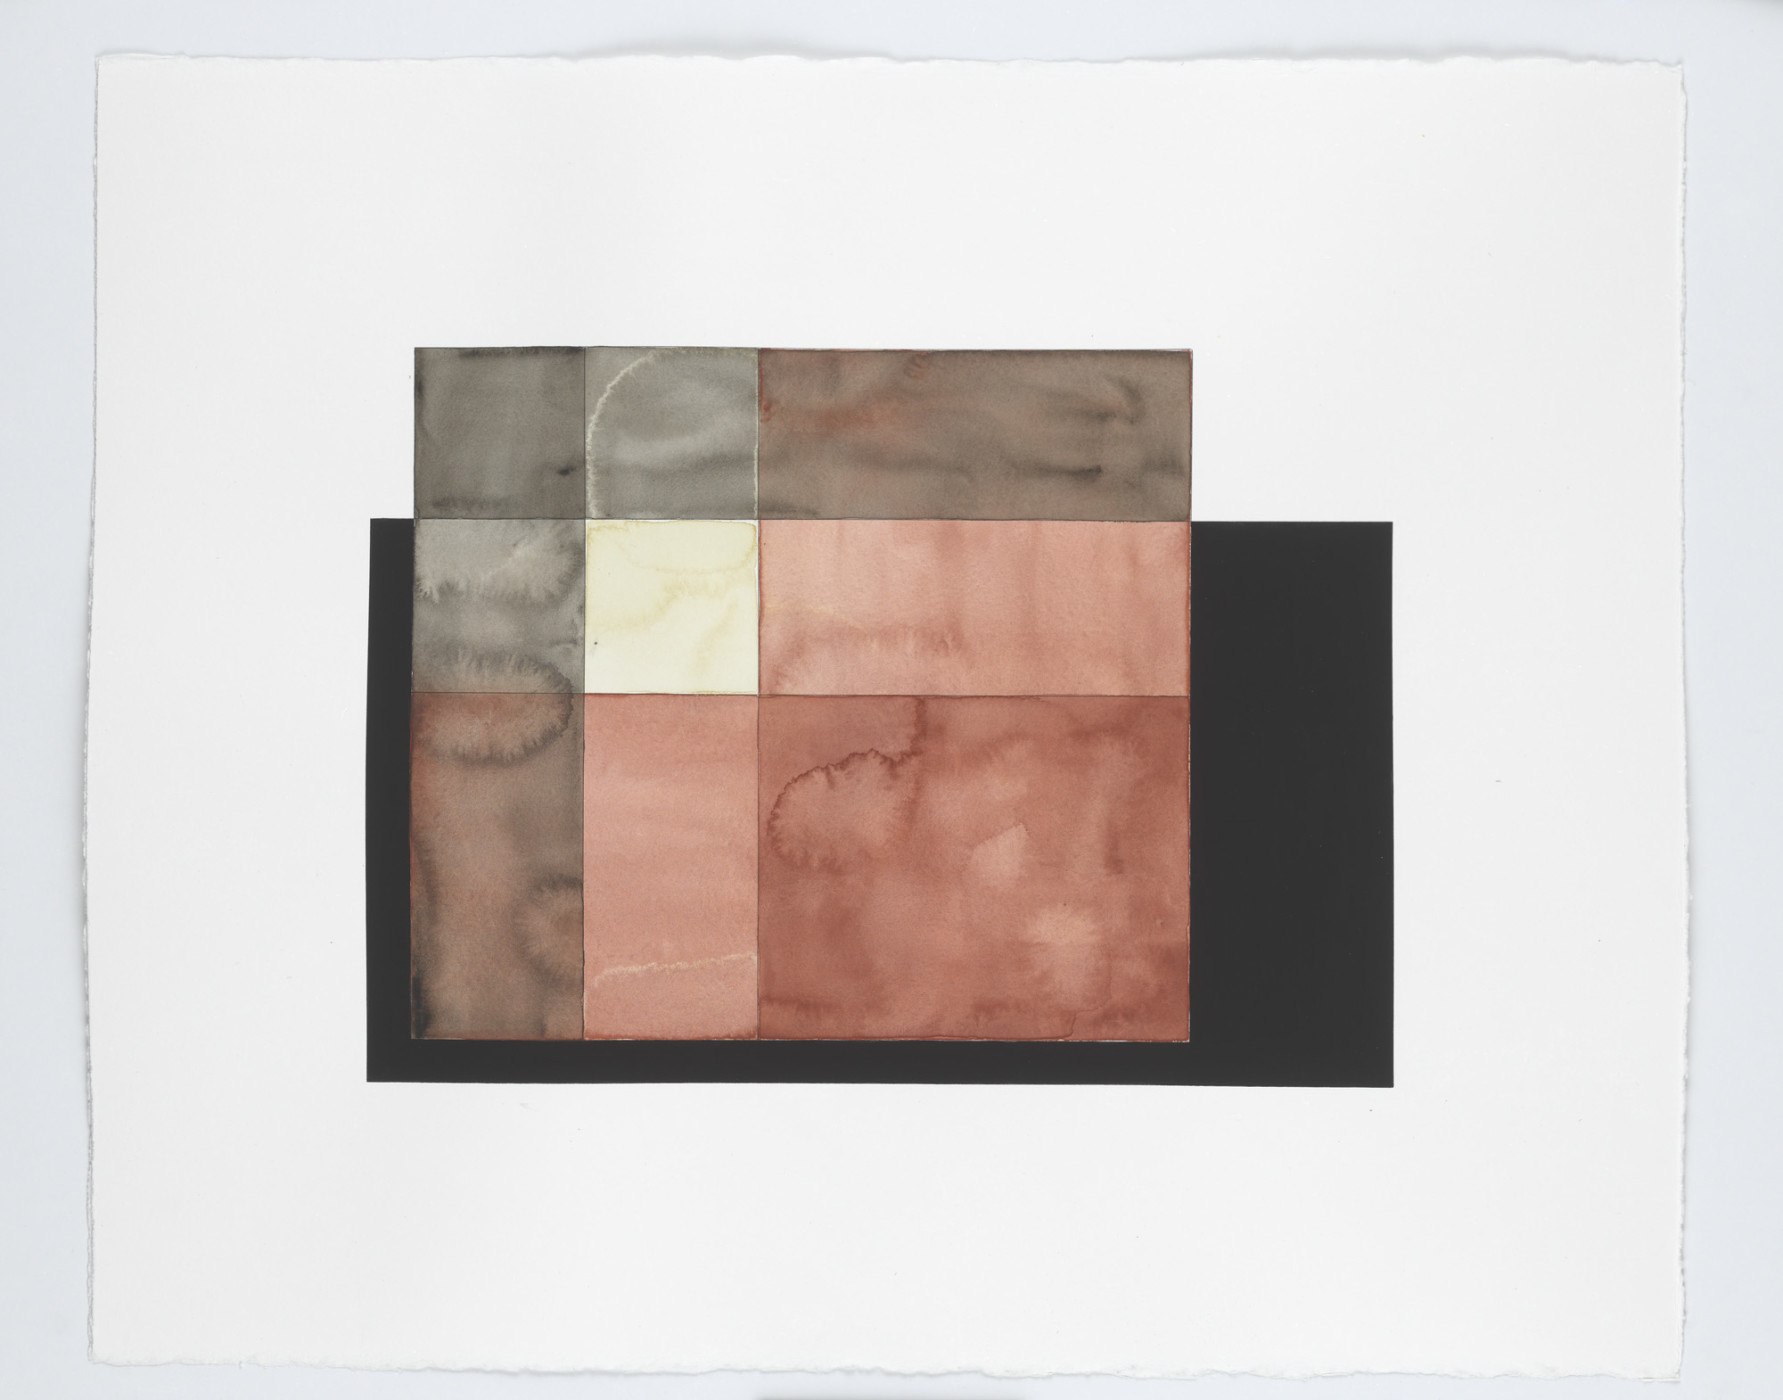 "<p><em>Warp and Weft Study (rust, white and black)</em>, 2013</p><div class=""medium"">watercolour and gouache on paper</div><div class=""dimensions"">63.6 x 75.9 x 3.4 cm</div><div class=""dimensions"">25 ⅛ x 29 ⅞ x 1 ⅜ in.</div>"